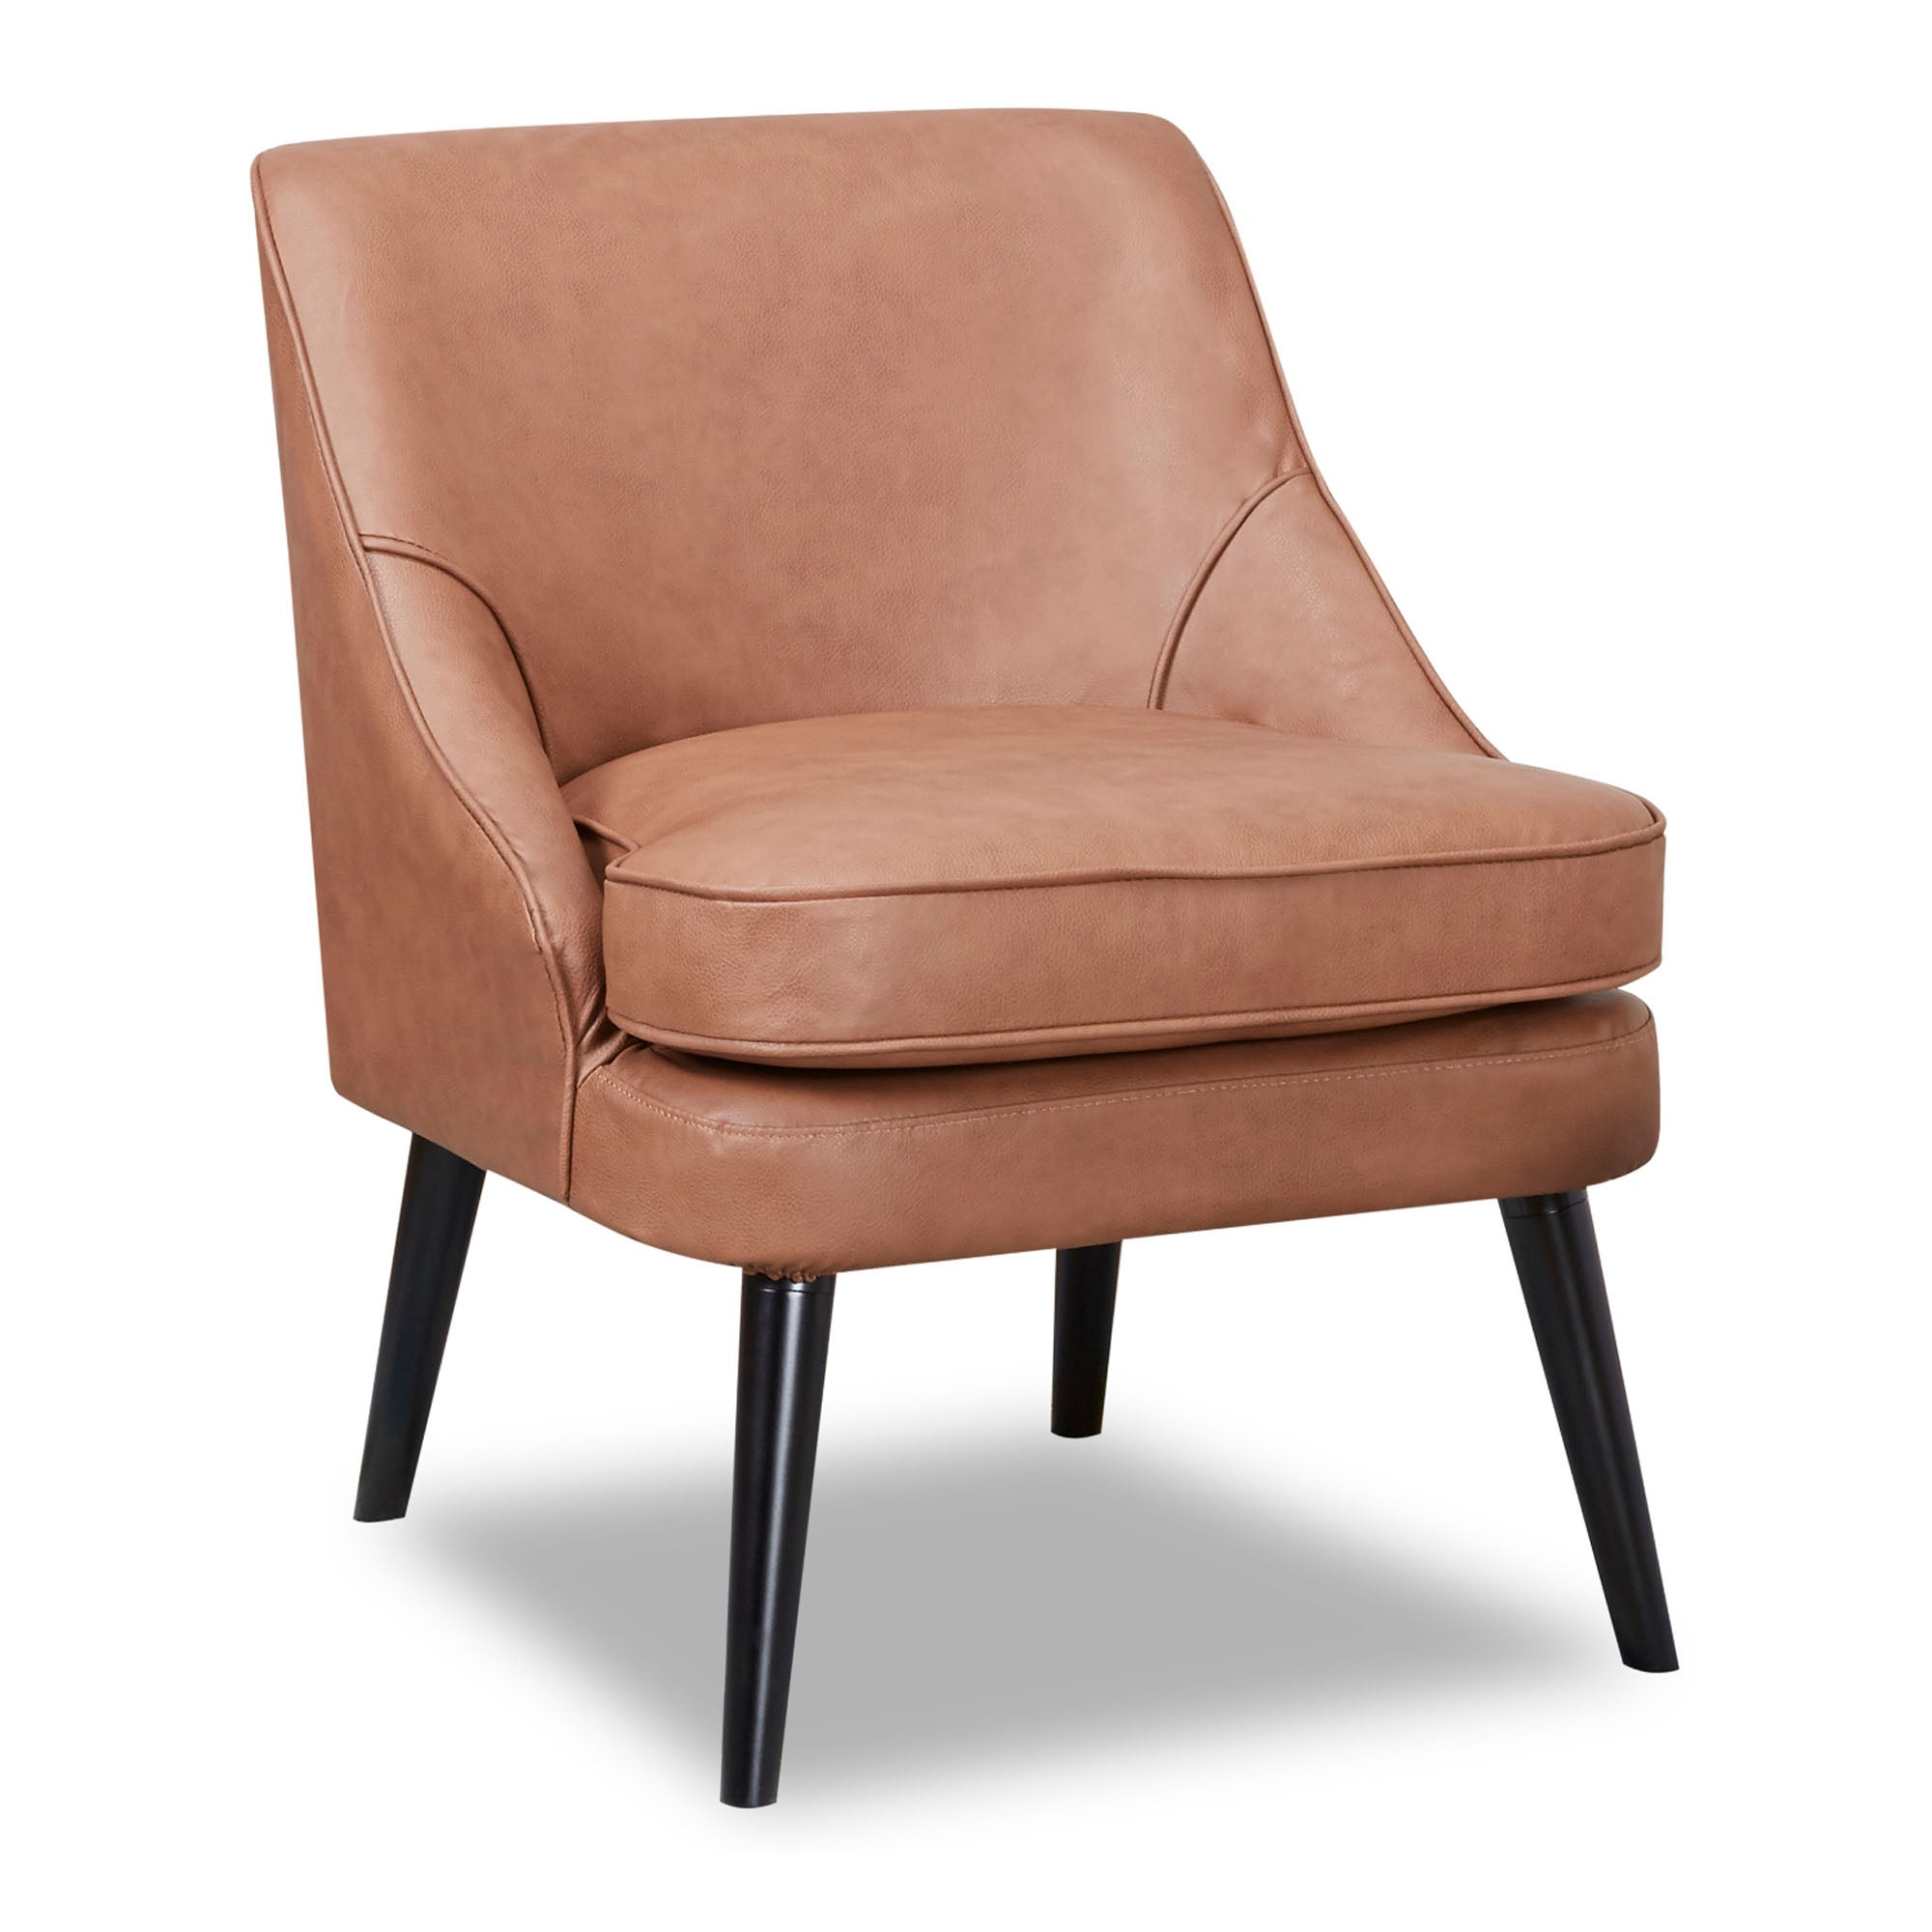 Photo of Crawford faux leather armchair brown